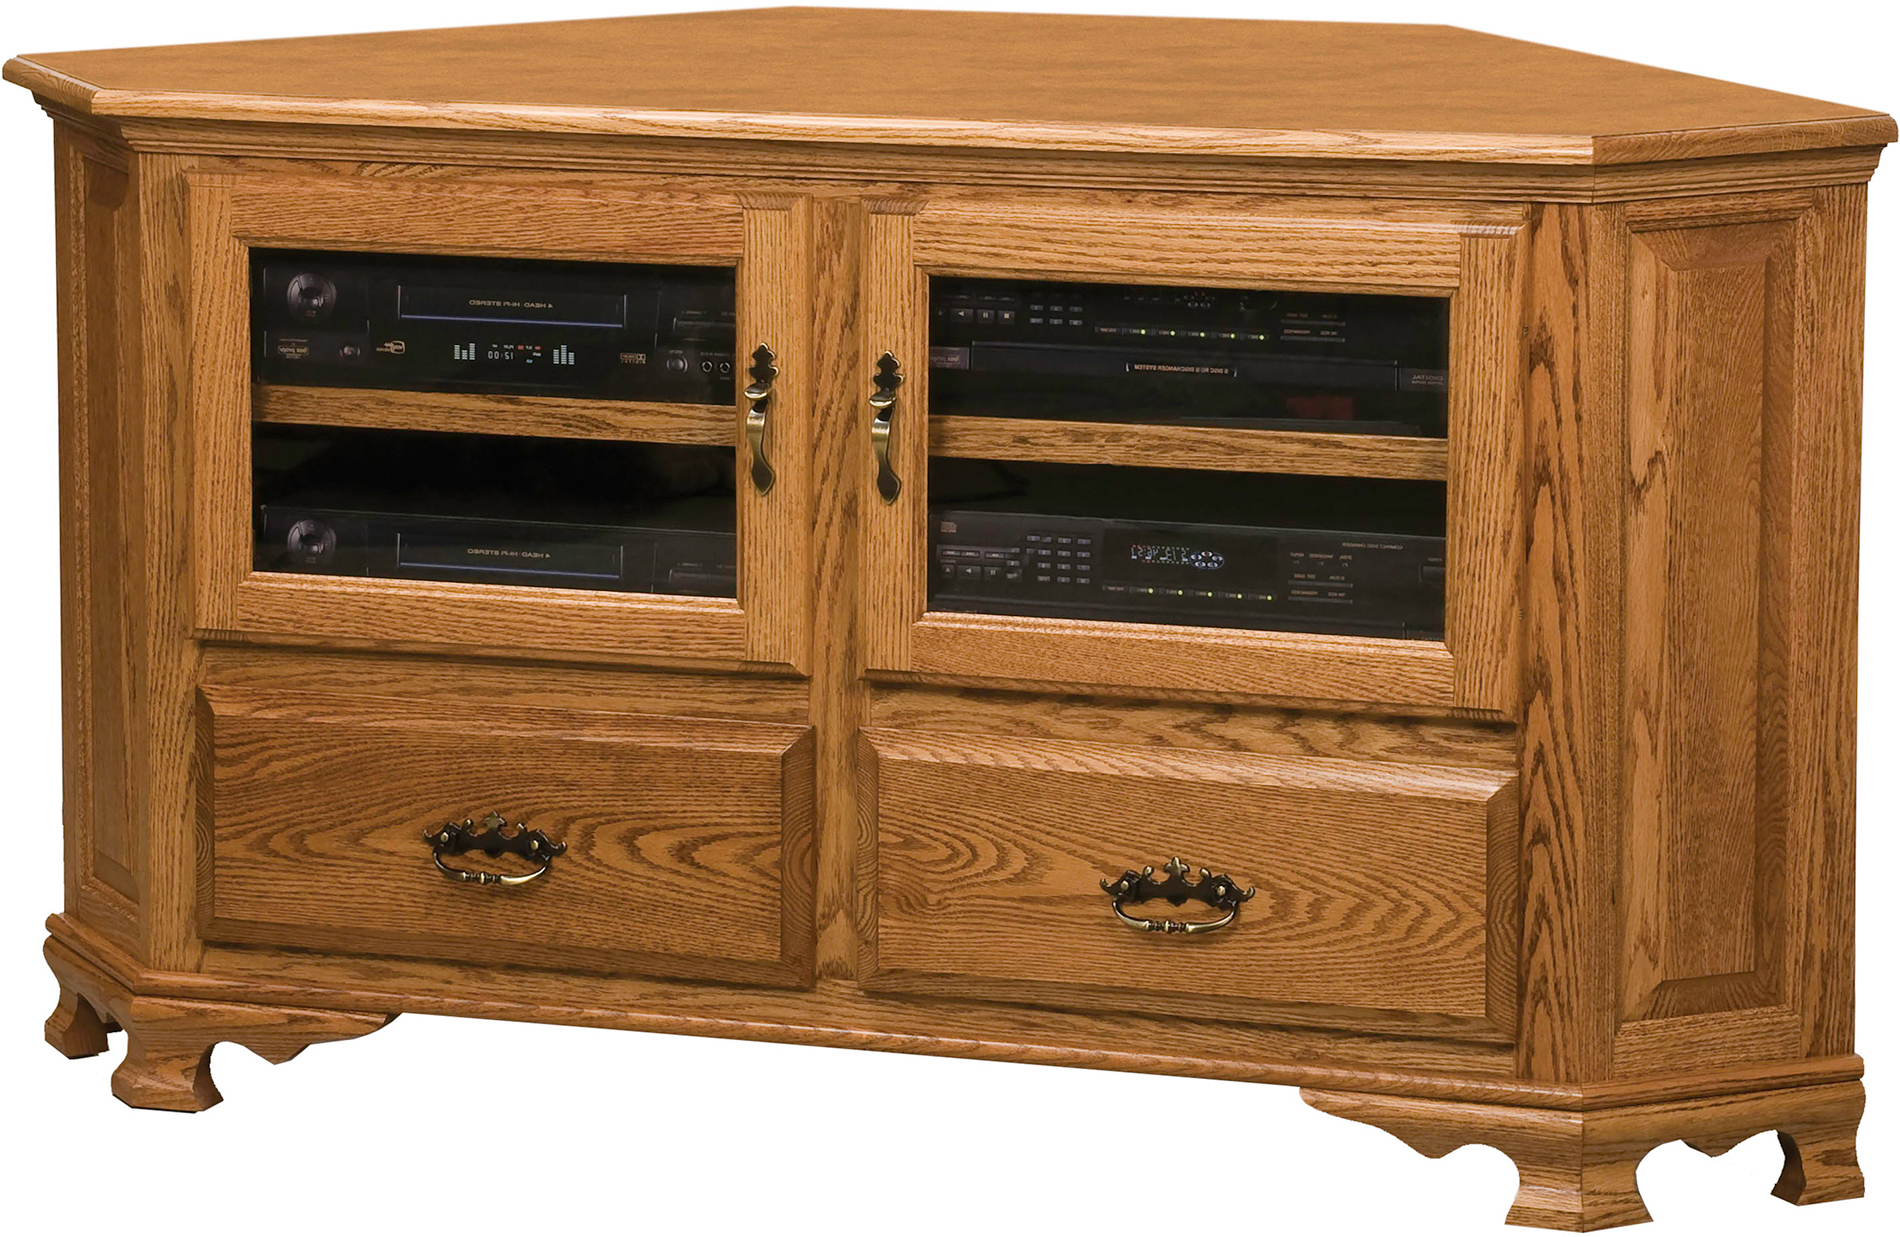 Heritage Large Corner Tv Stand | Amish Heritage Large For Hex Corner Tv Stands (View 13 of 20)